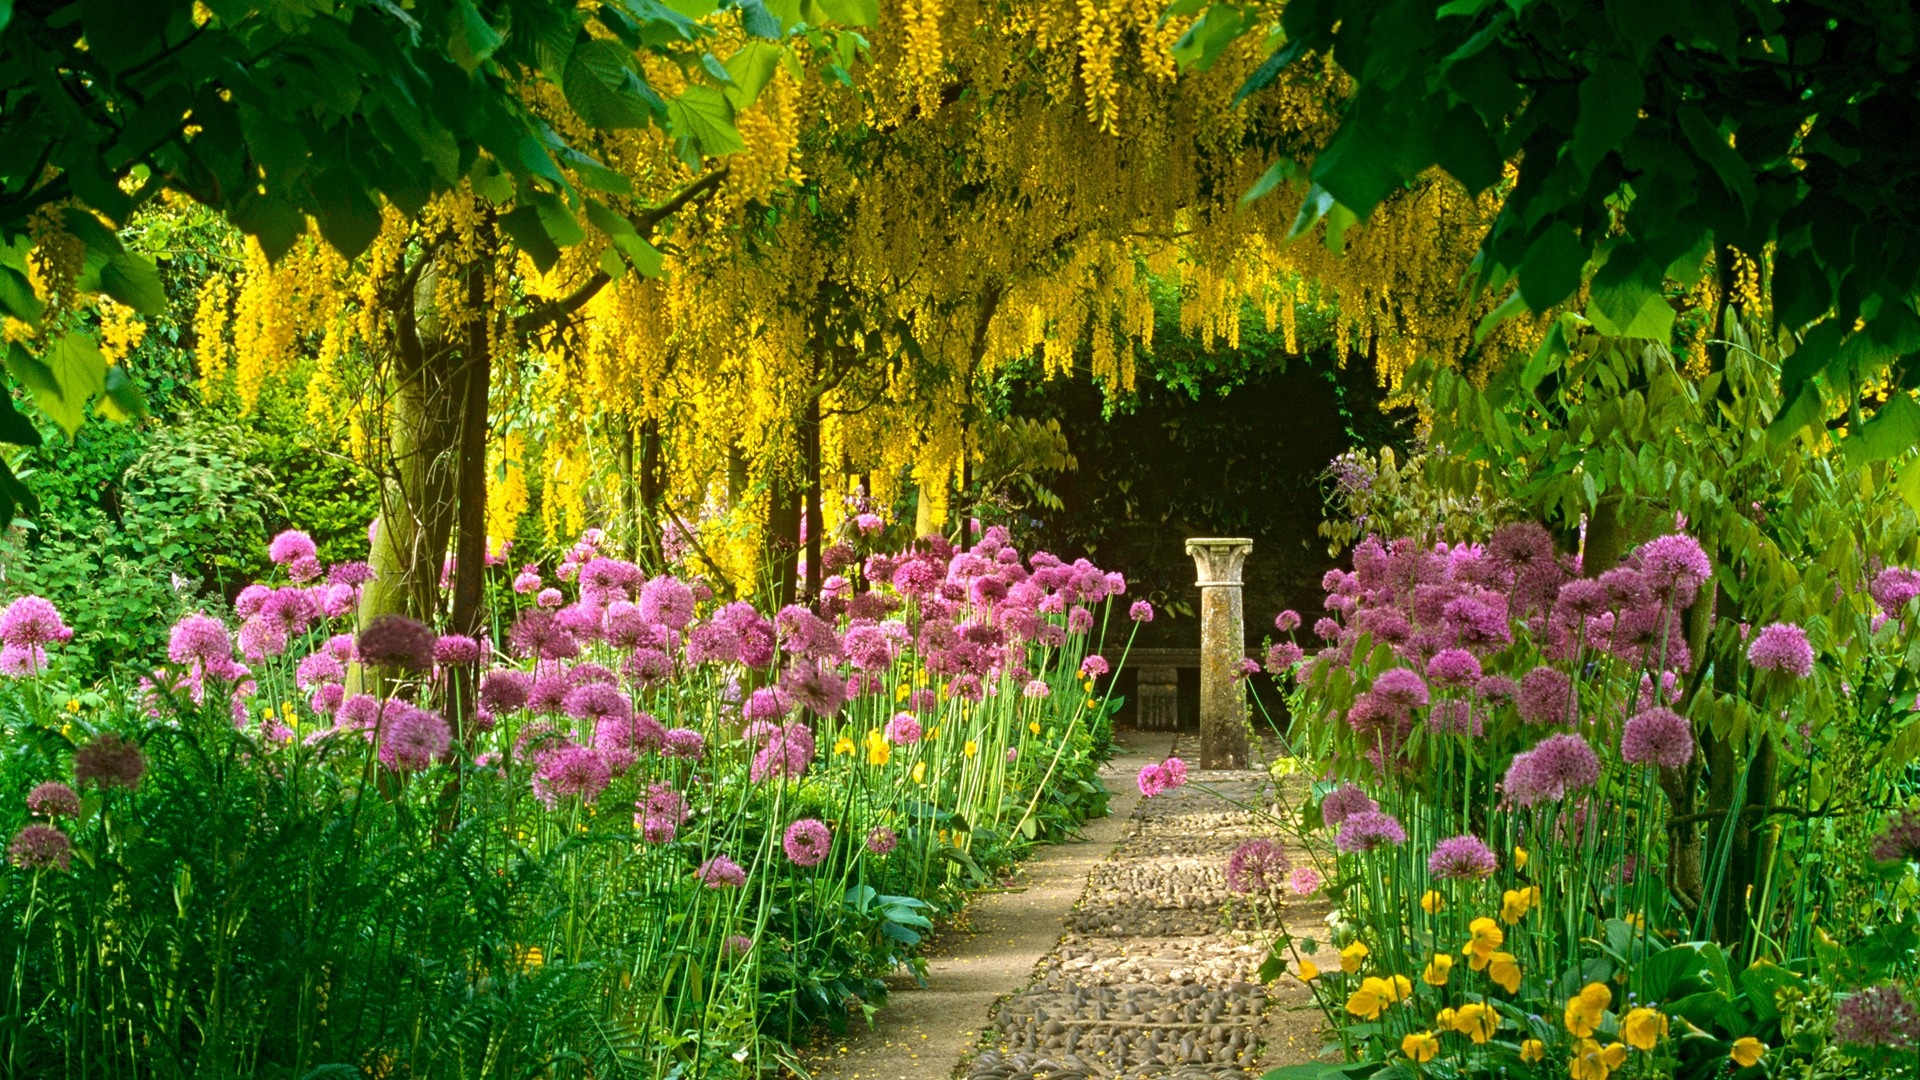 Garden Wallpapers High Quality Download